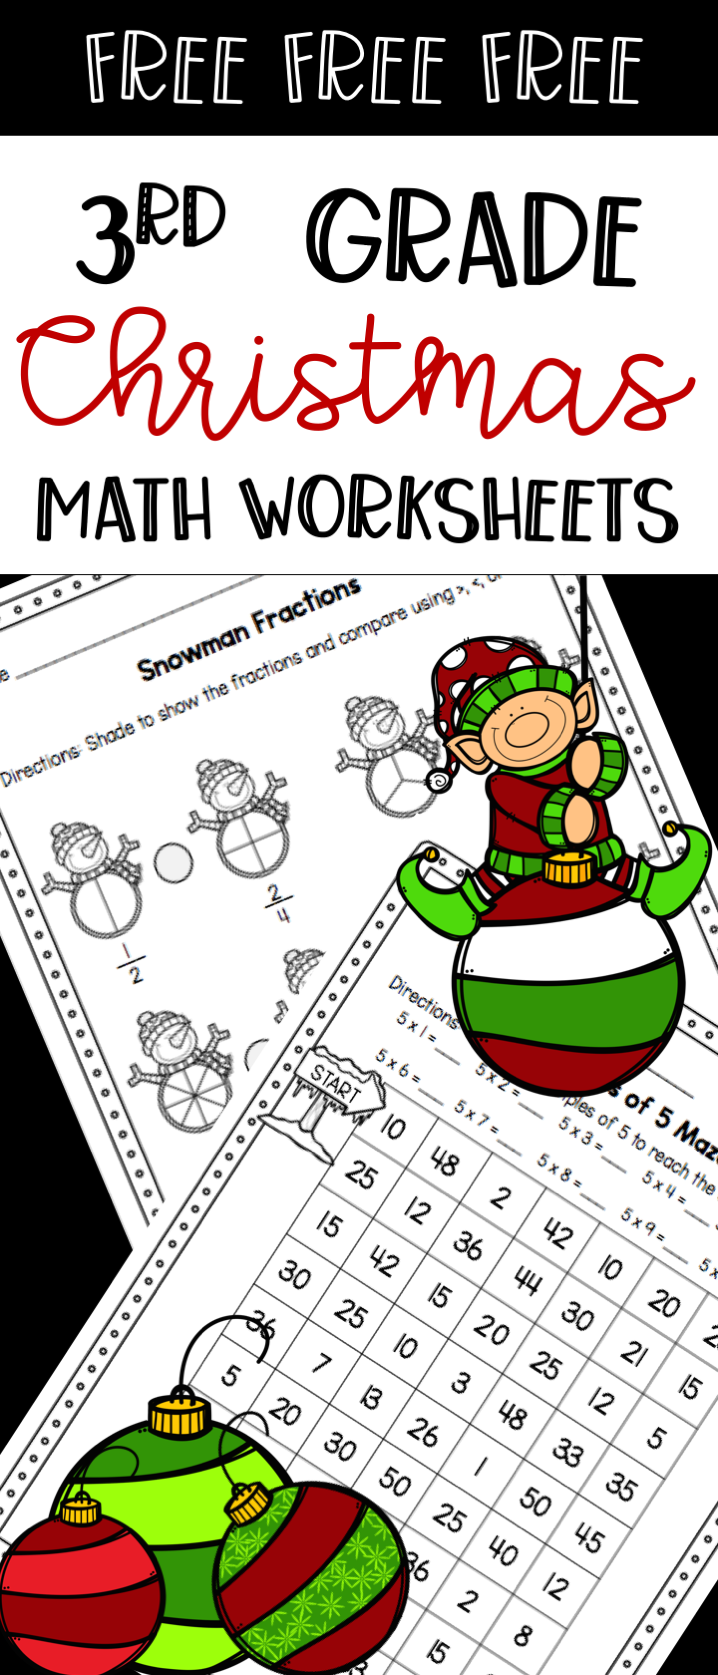 small resolution of Free 3rd grade Christmas math worksheets - comparing fractions and  multiplication products of 5 - fun rev…   Christmas math worksheets